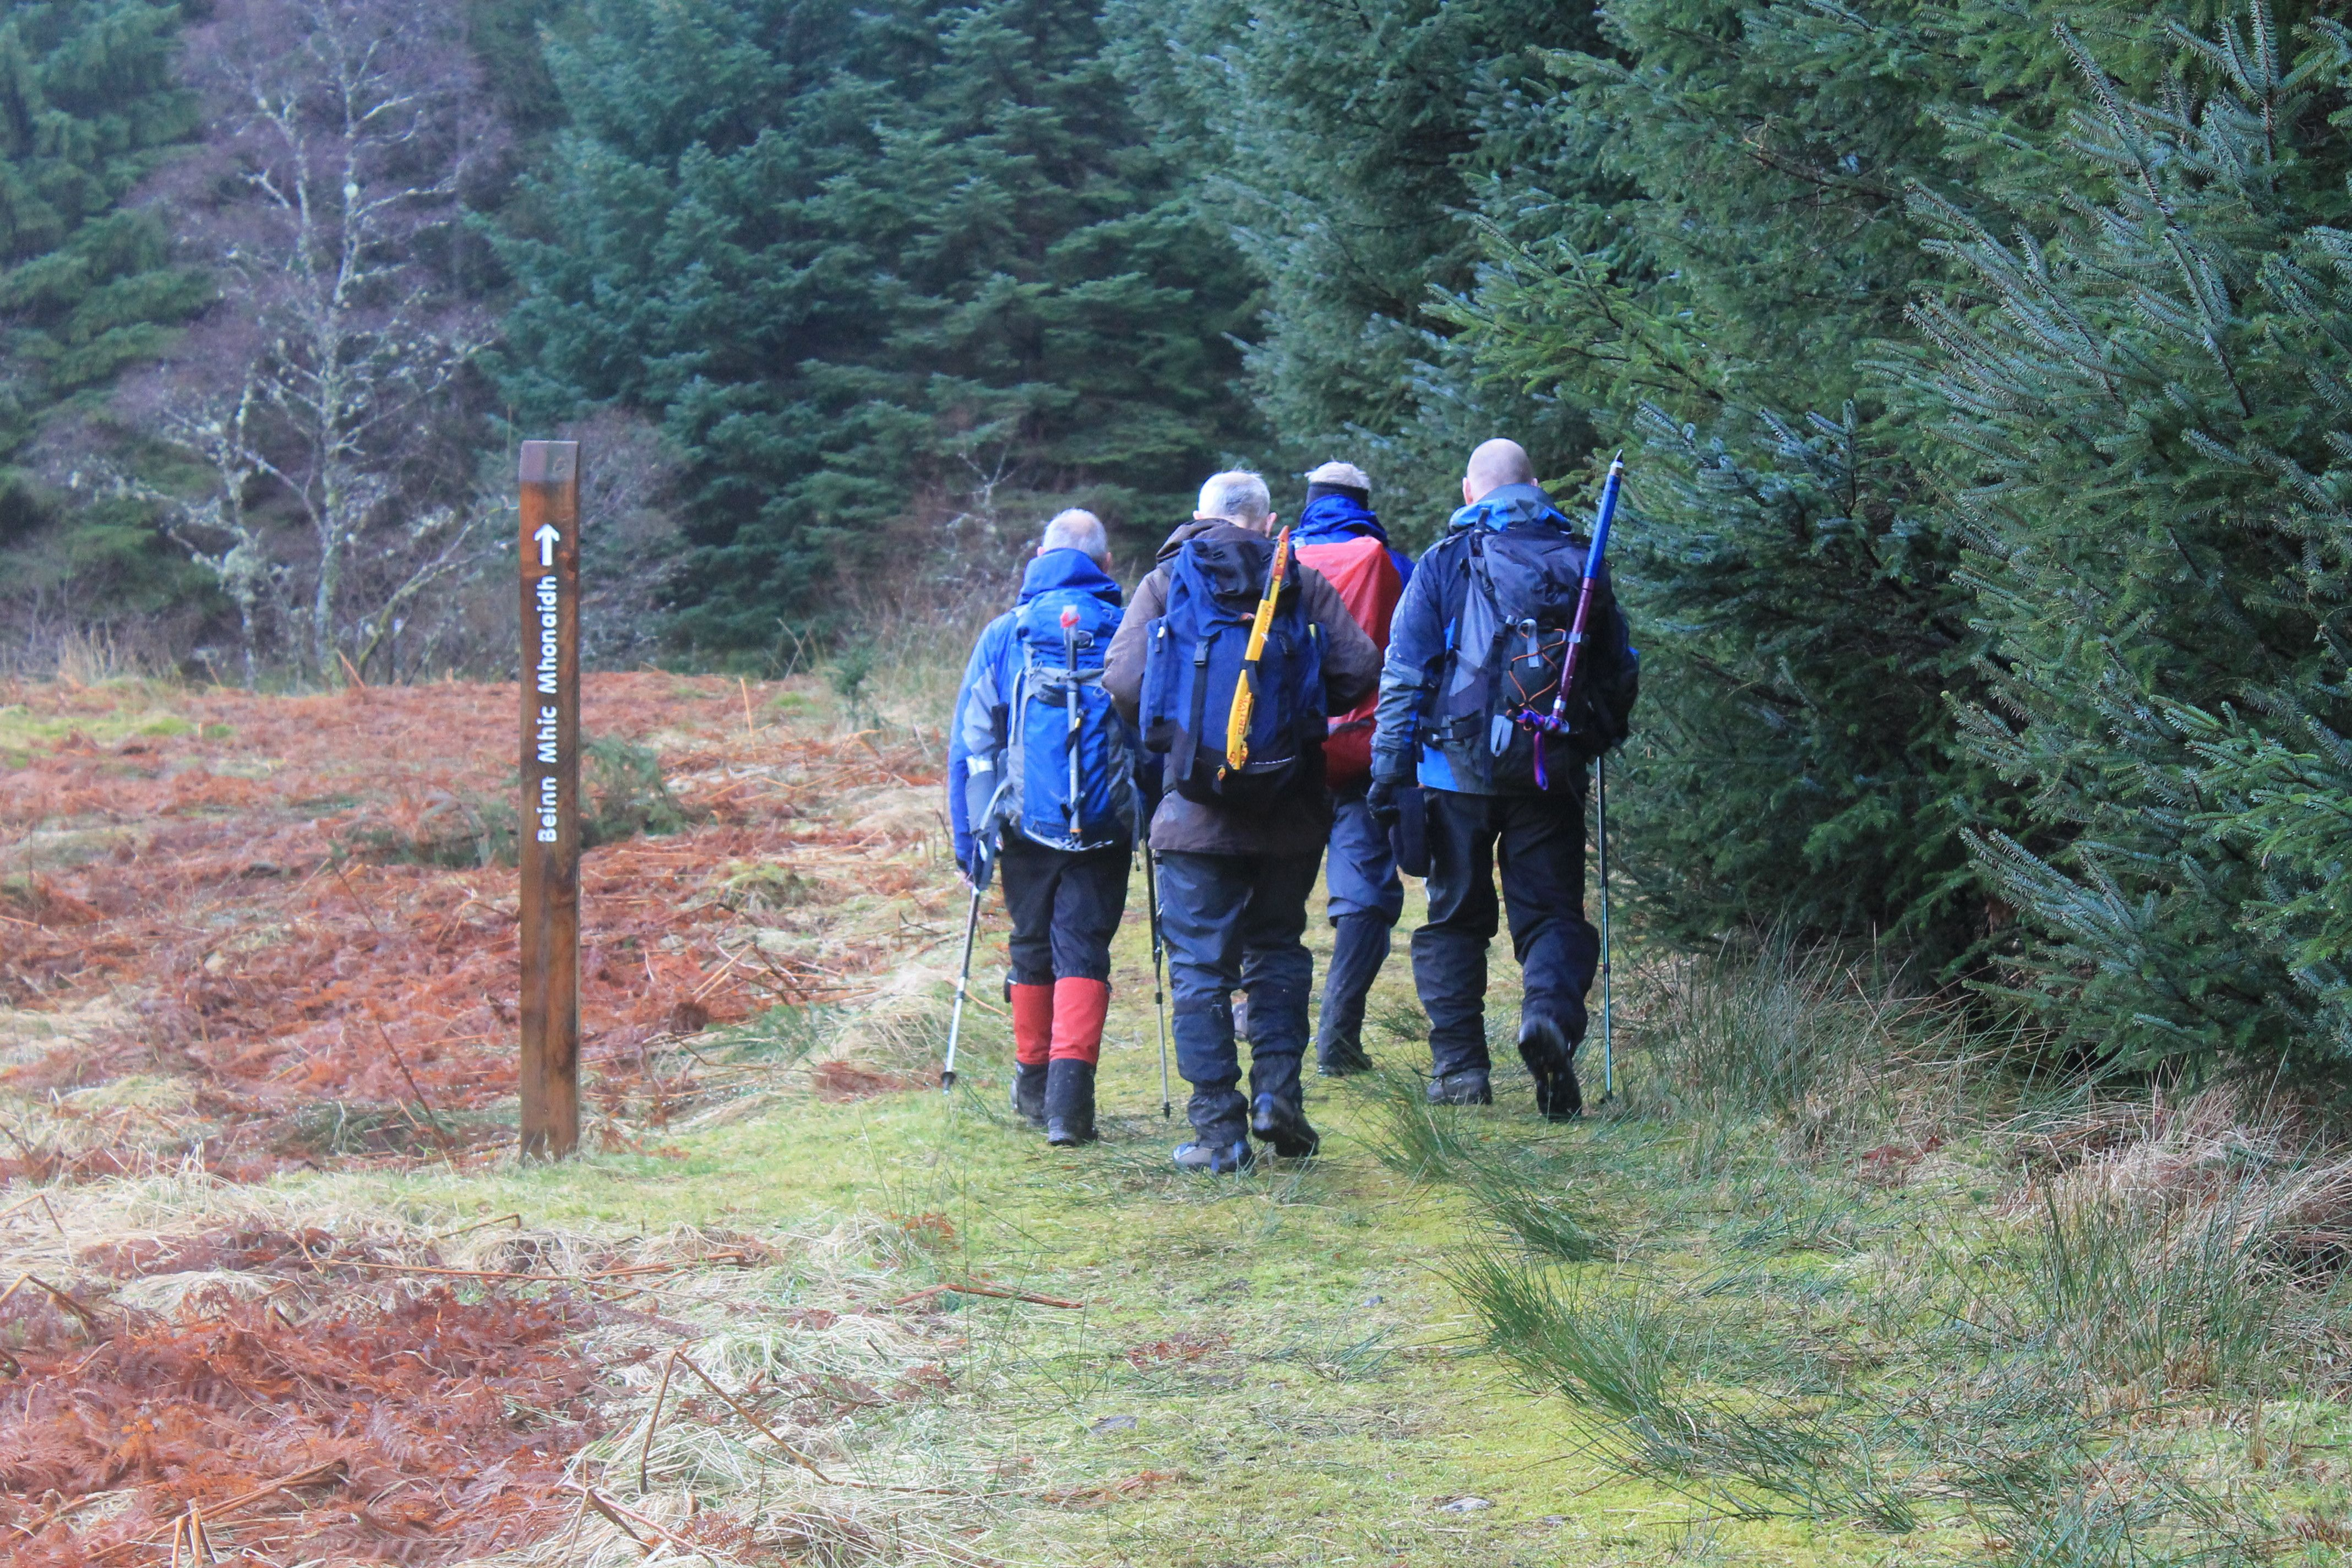 Heading through the Caledonian Forest Reserve